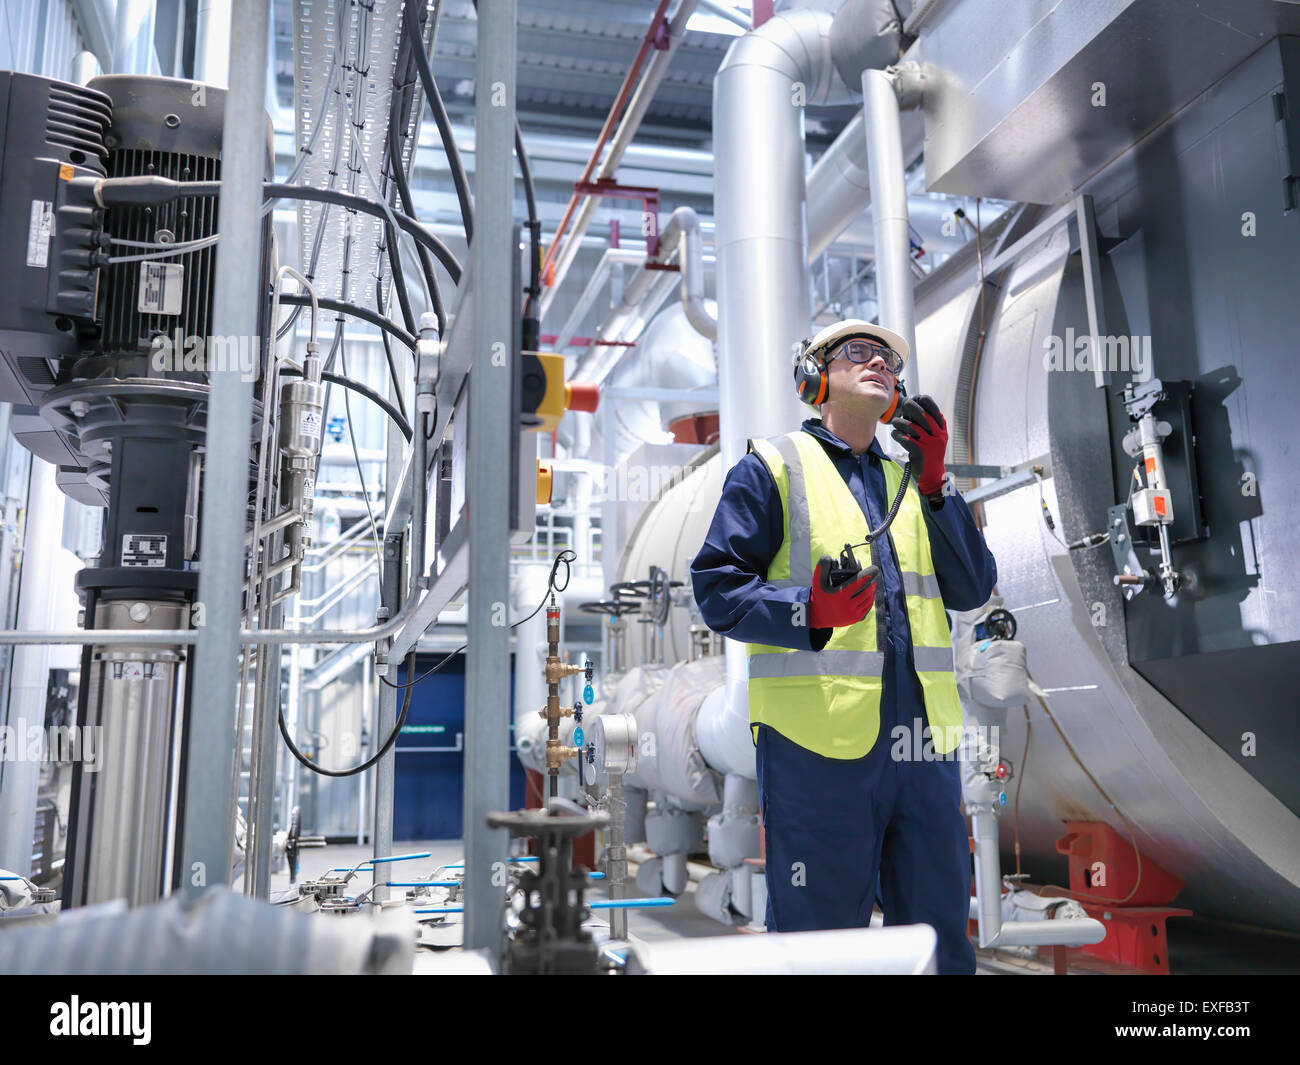 Worker using radio in gas fired power station - Stock Image